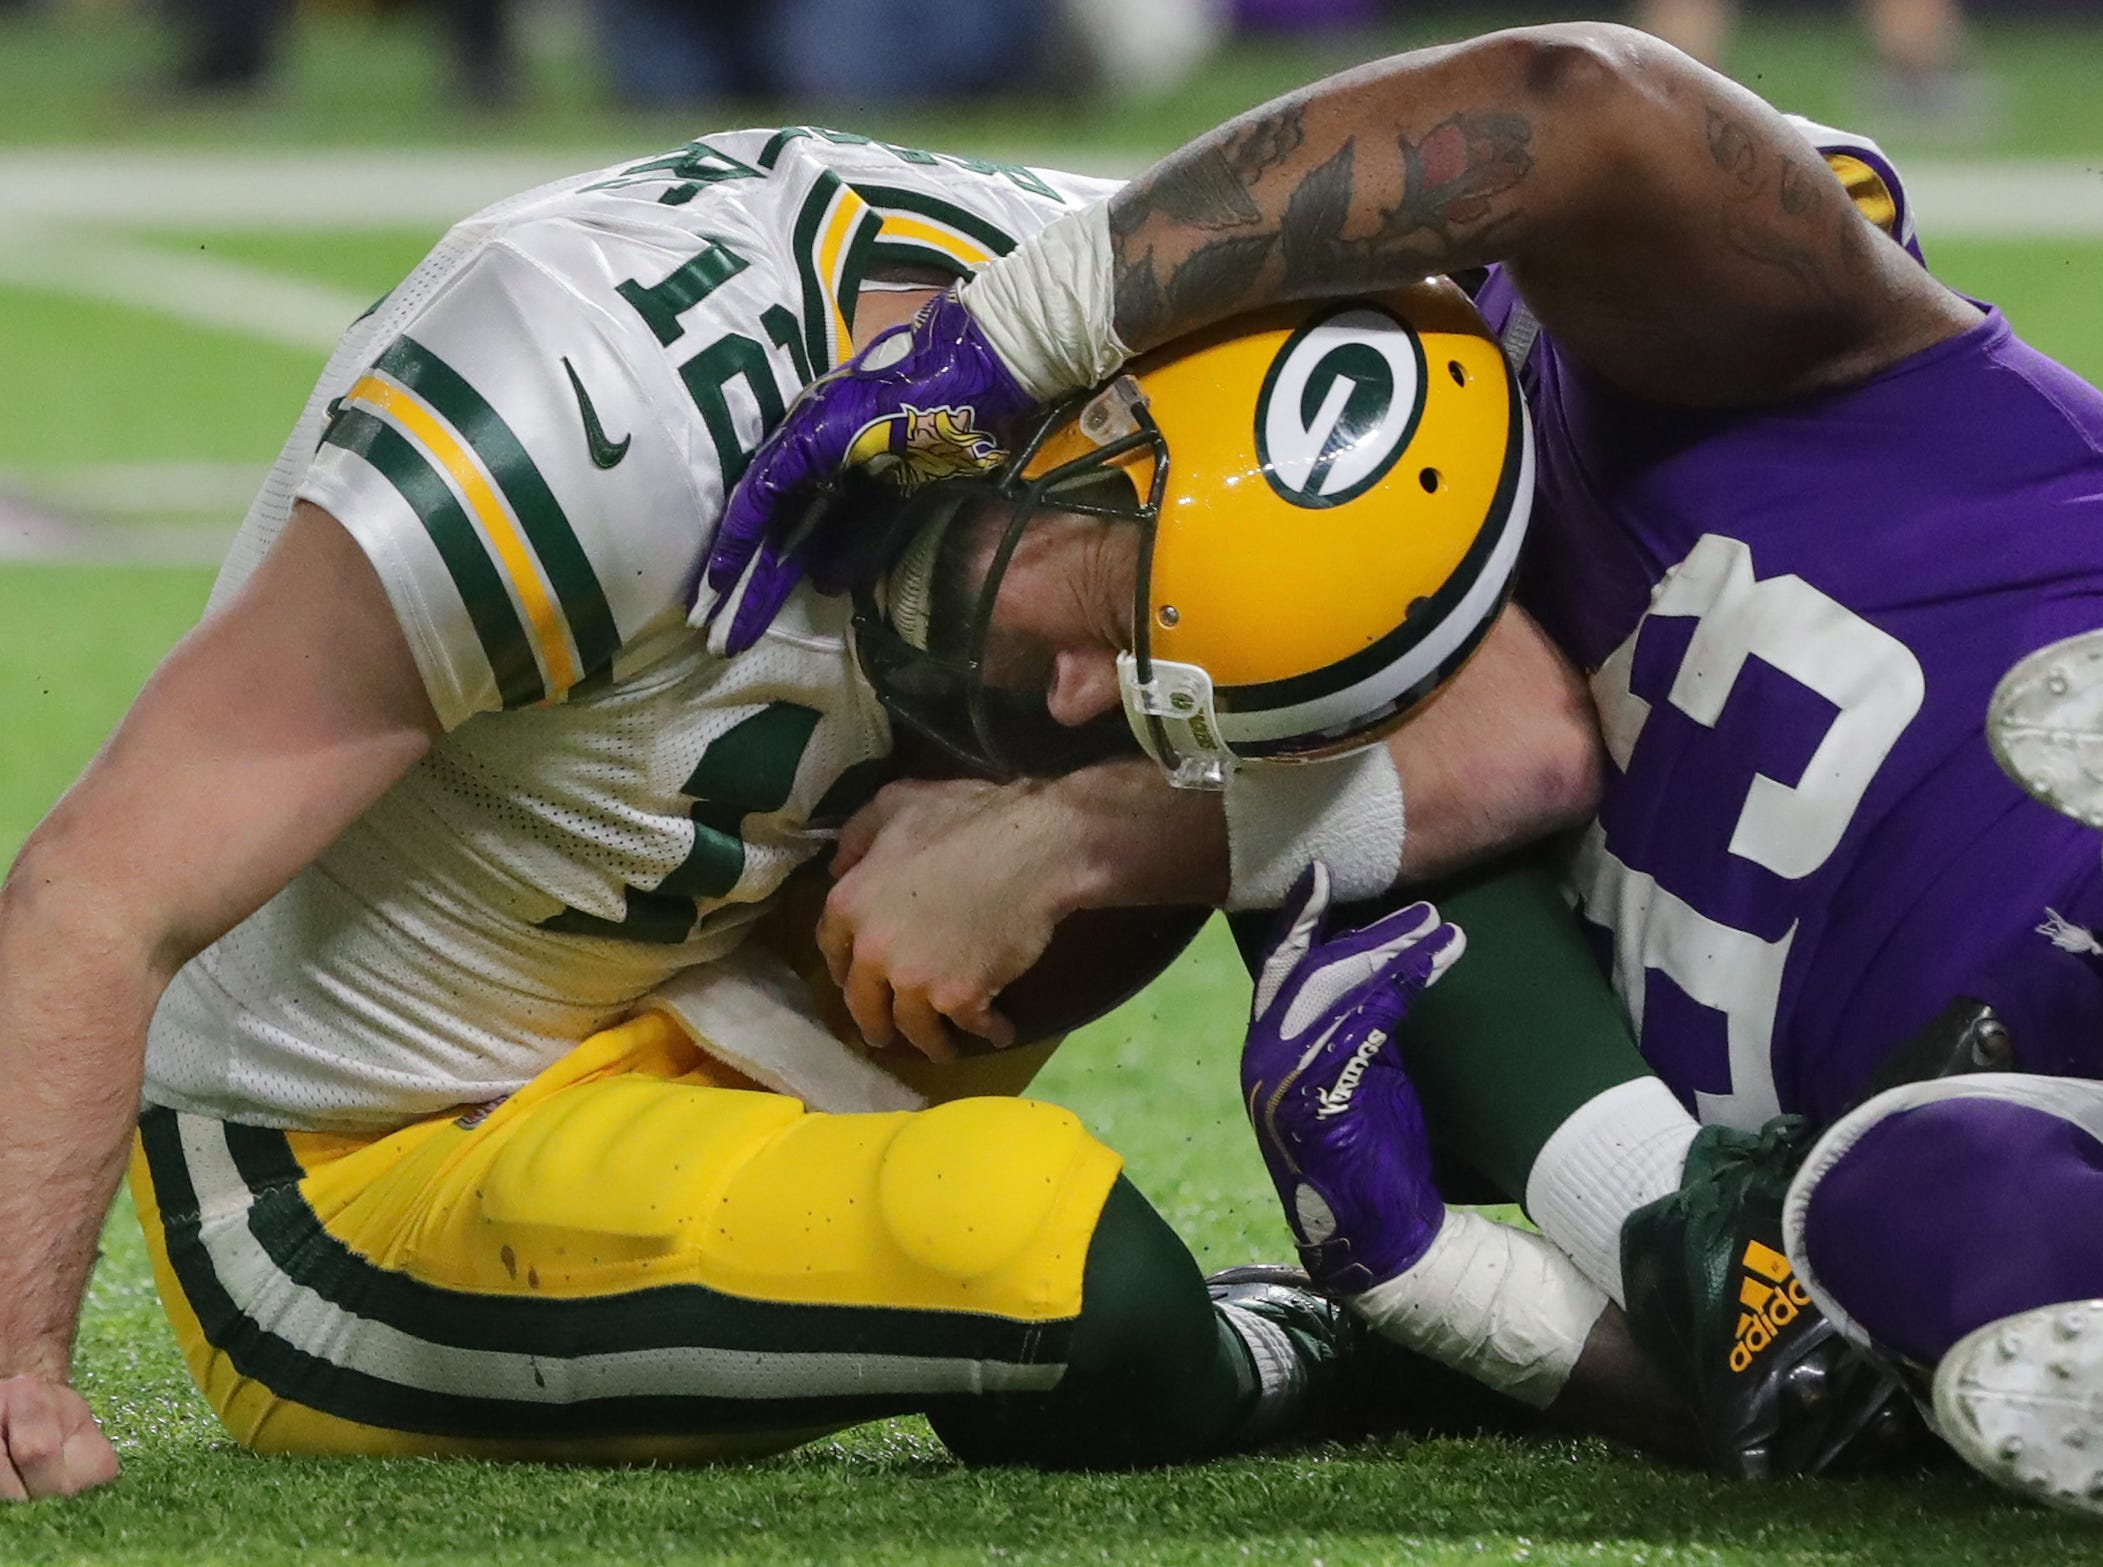 Green Bay Packers quarterback Aaron Rodgers (12) is sacked by Minnesota Vikings defensive tackle Sheldon Richardson (93) during the fourth quarter of their game Sunday, November 25, 2018 at U.S. Bank Stadium in Minneapolis, Minn. The Minnesota Vikings beat the Green Bay Packers 24-17.